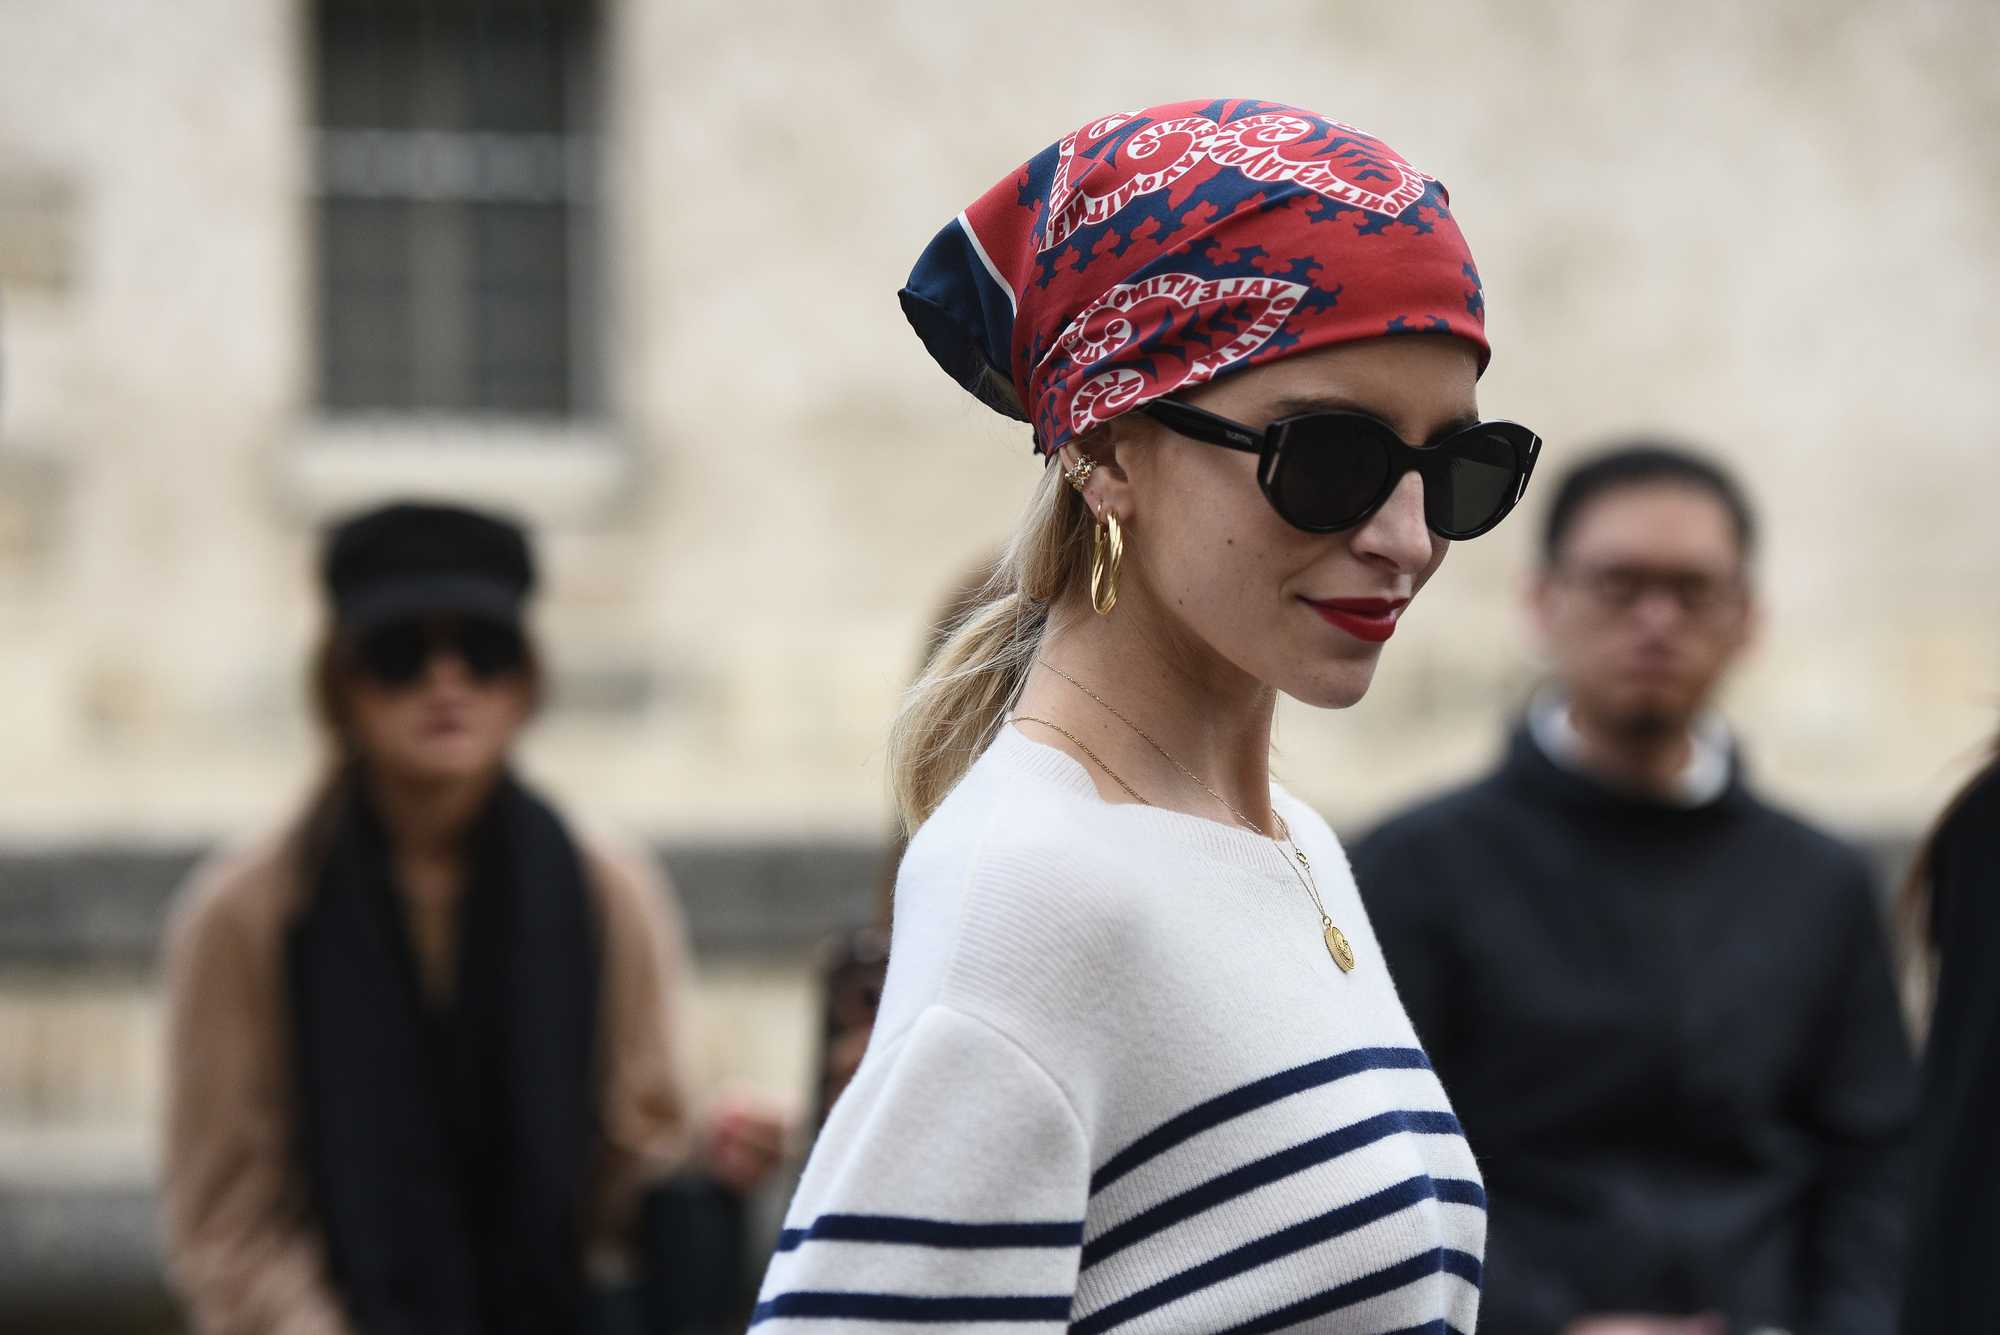 Bandana hairstyles: Woman with bandana wrapped around her head, wearing sunglasses and posing on the street